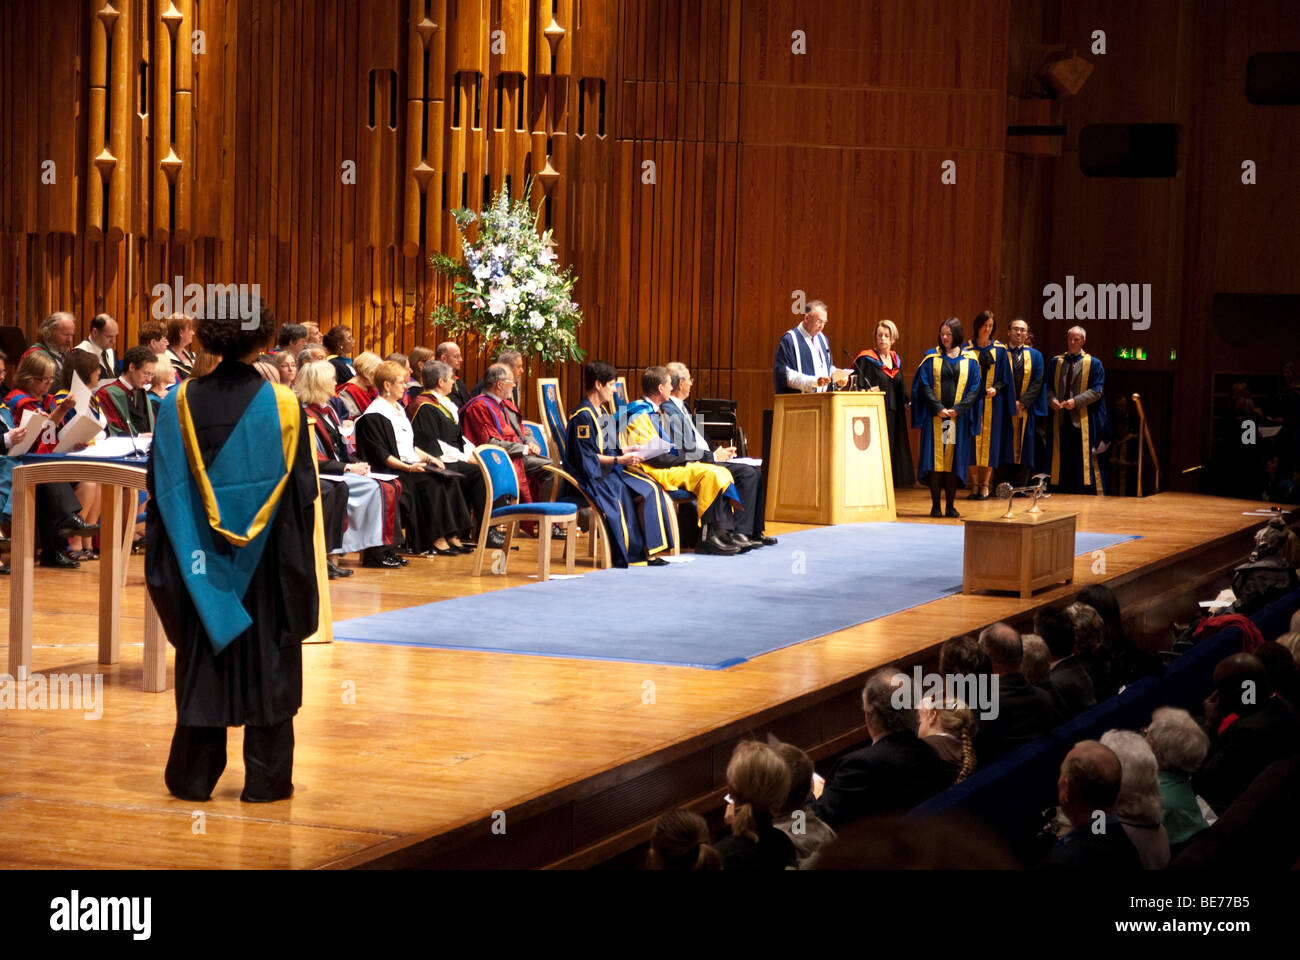 Open University Degree Ceremony at the Barbican Centre London on 18 September 2009 - Stock Image